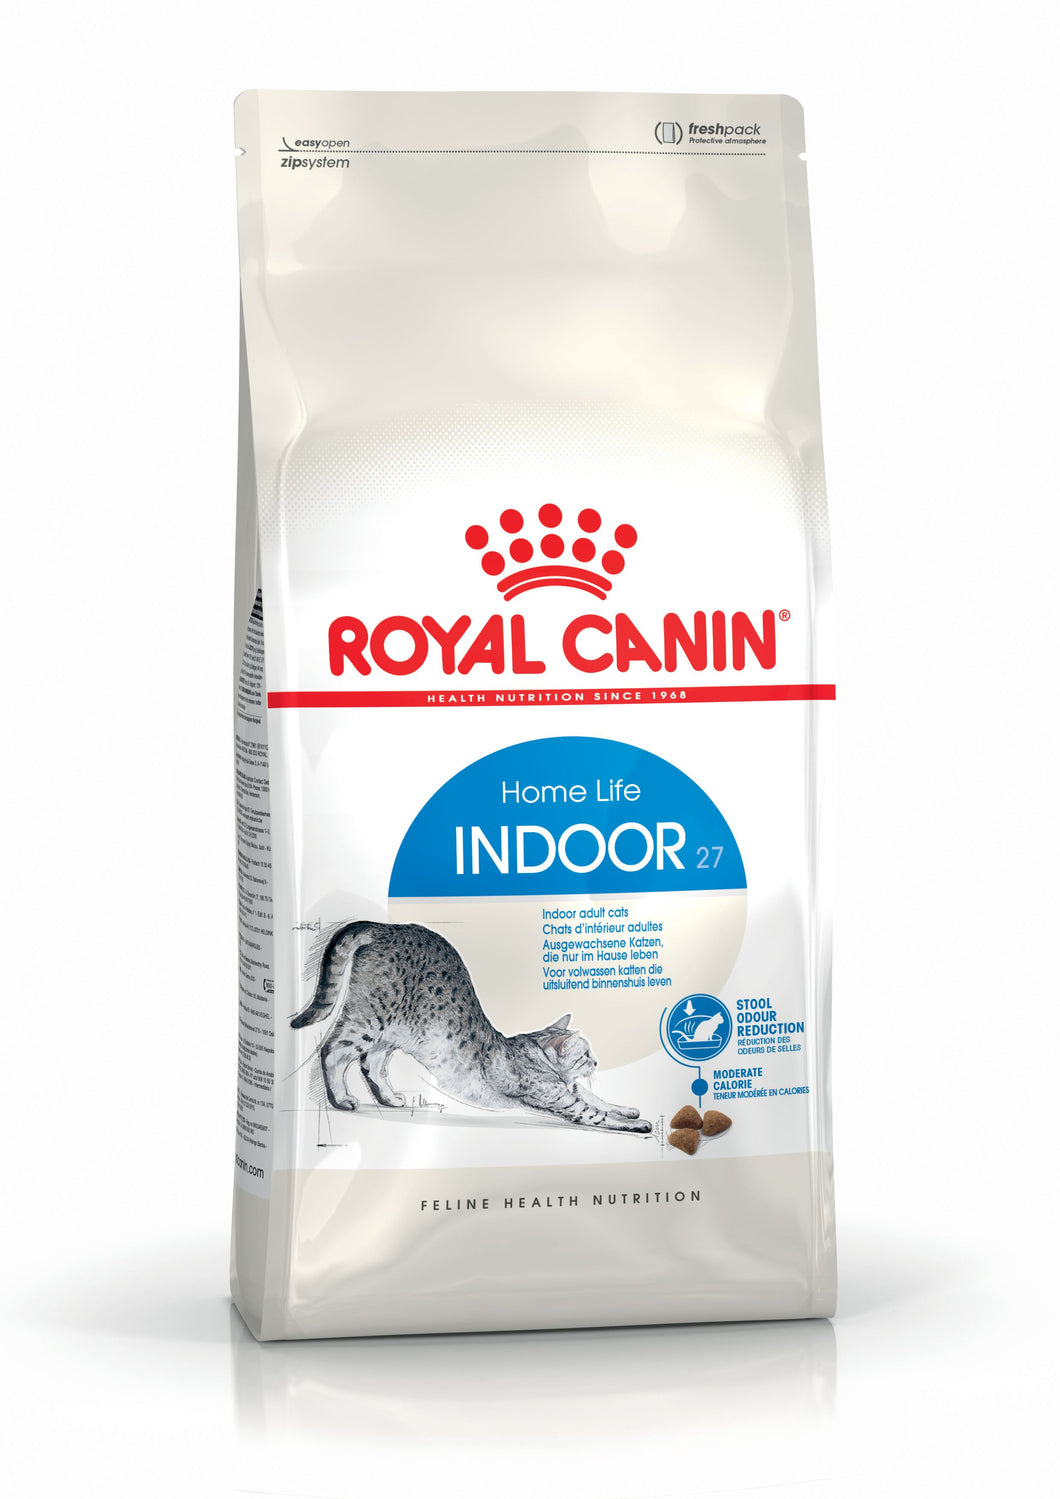 Royal Canin Indoor 27 Dry Cat Food 4KG